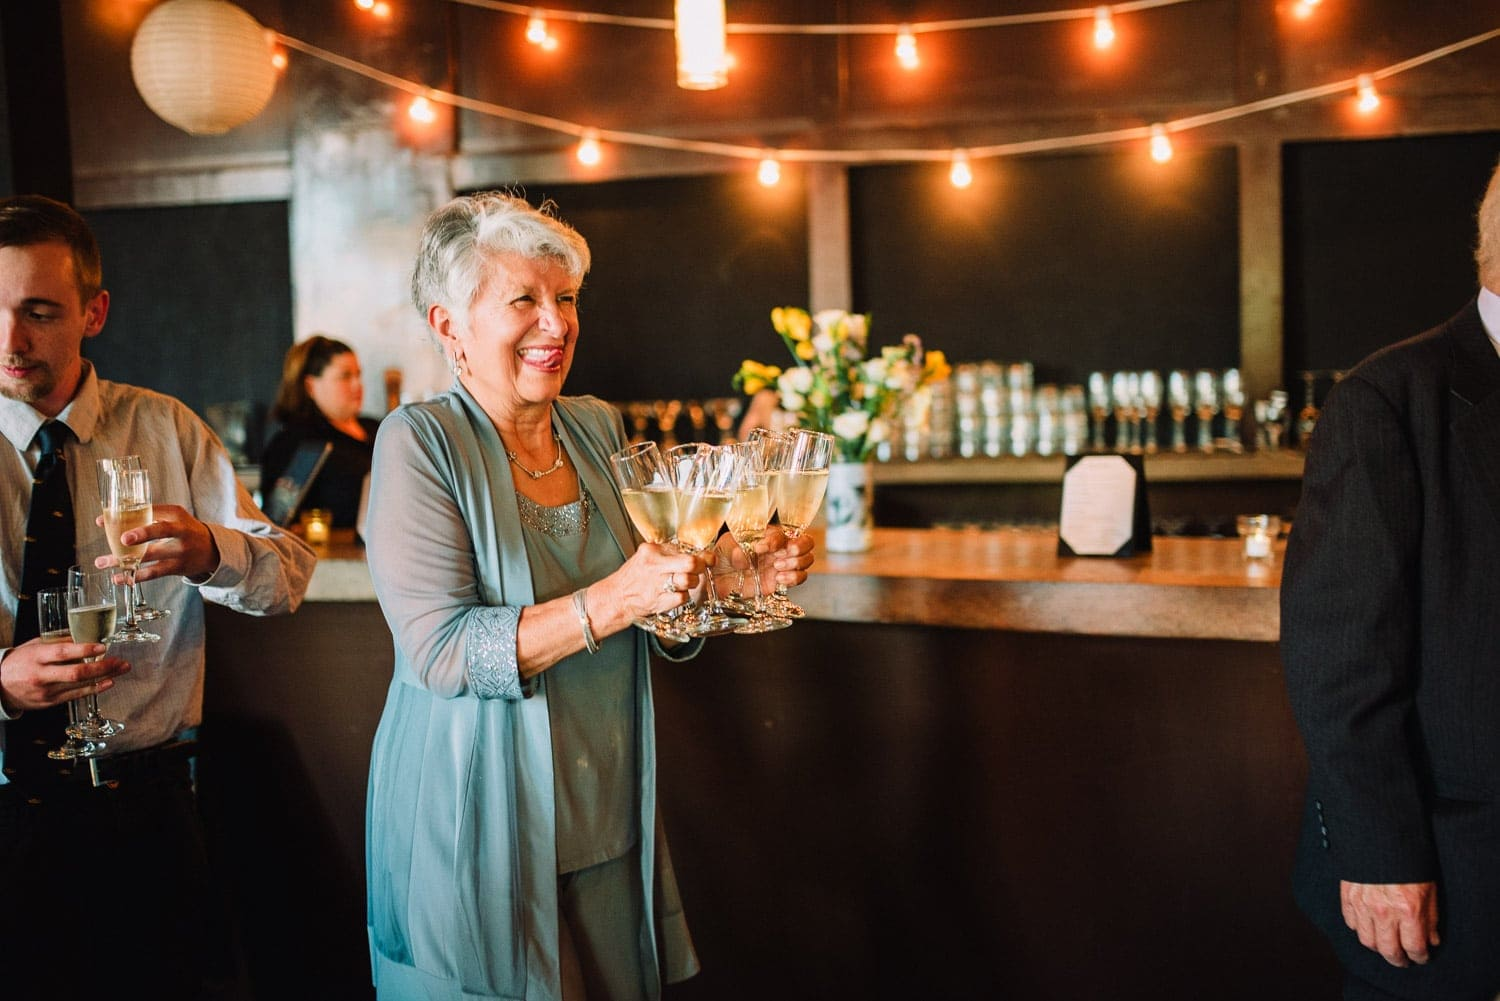 A wedding guest is smiling and carrying champaign glasses to the bride and groom.